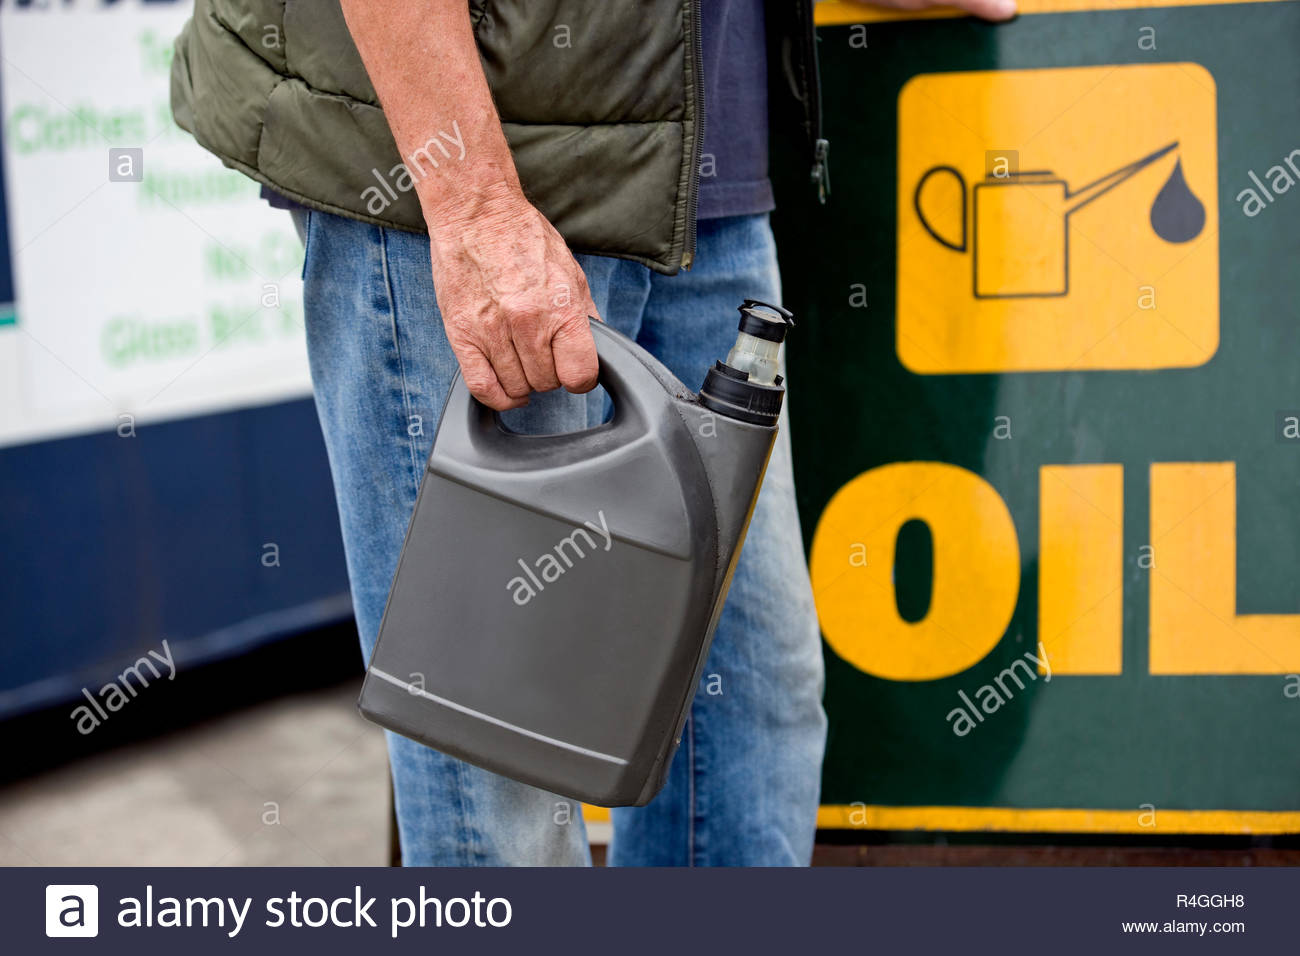 A senior man holding an oil container in a recycling centre, close-up - Stock Image